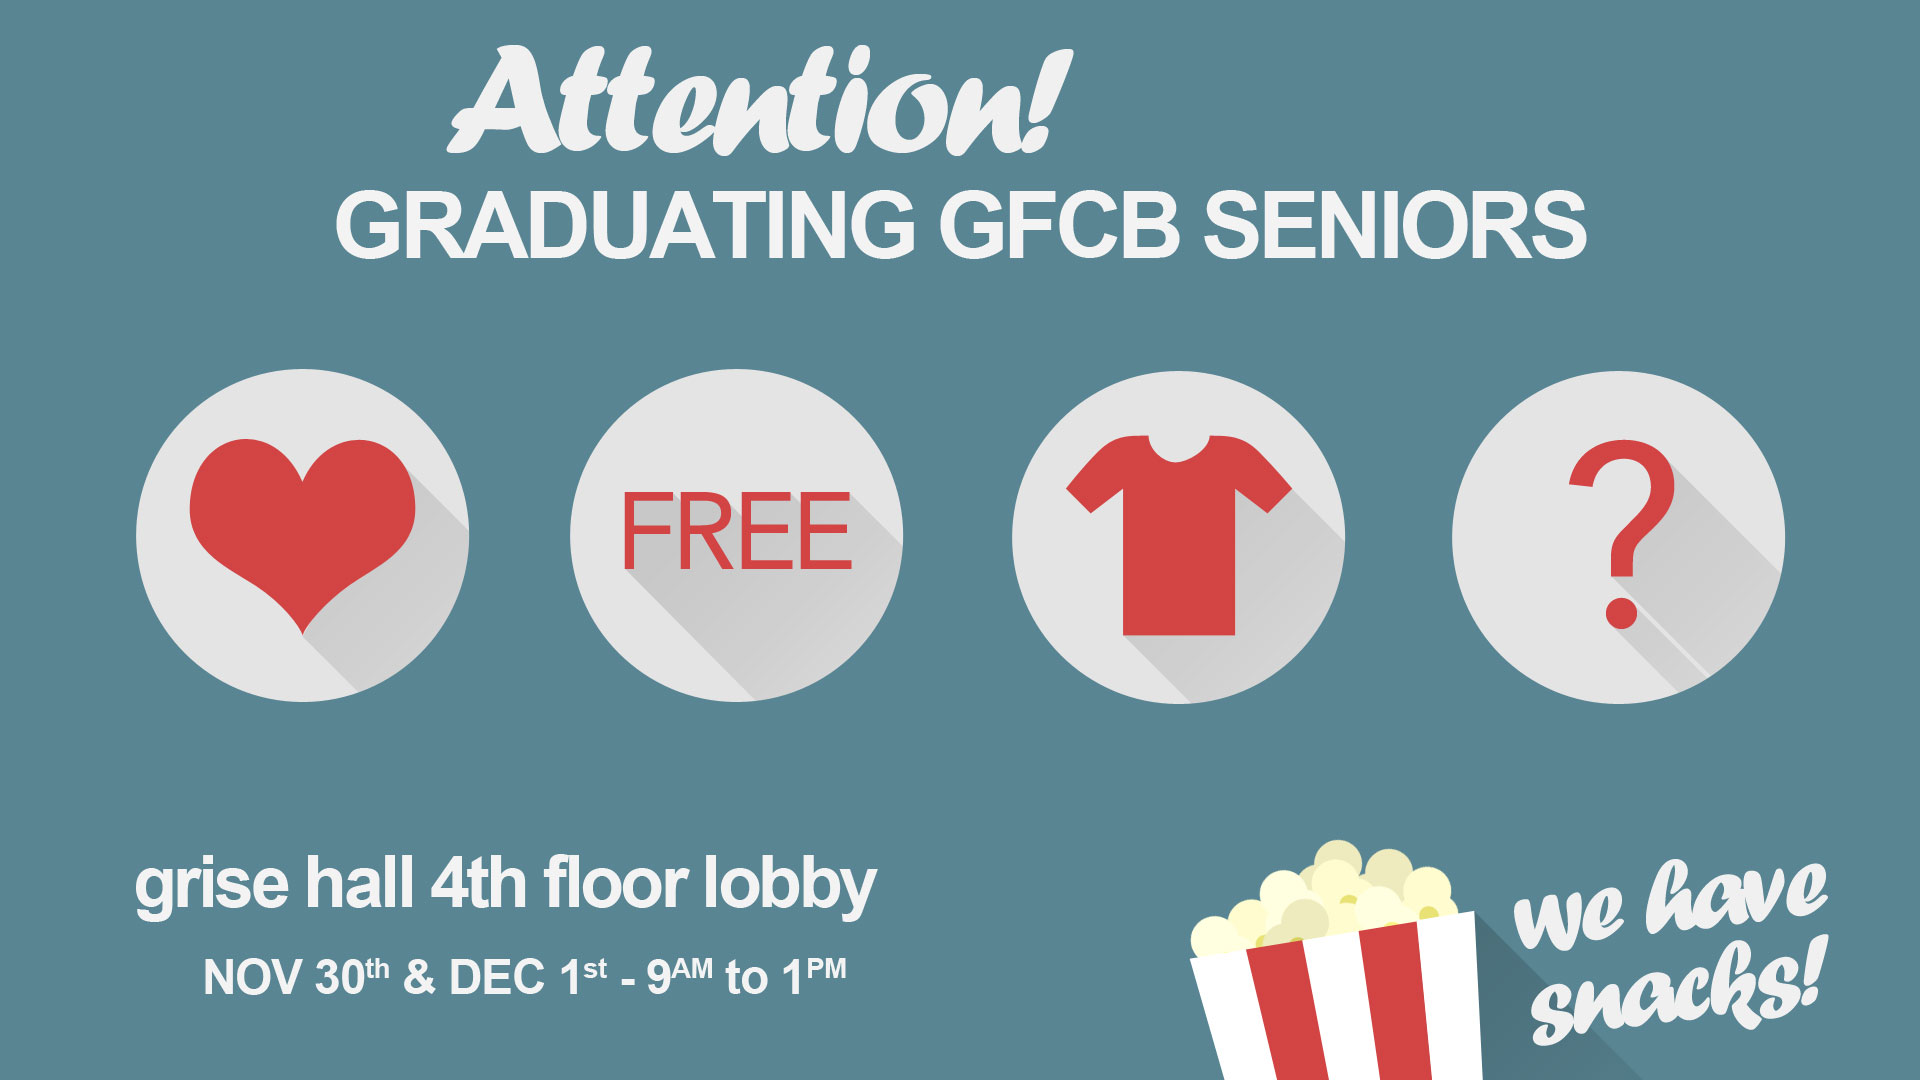 T-shirt giveaway for seniors.